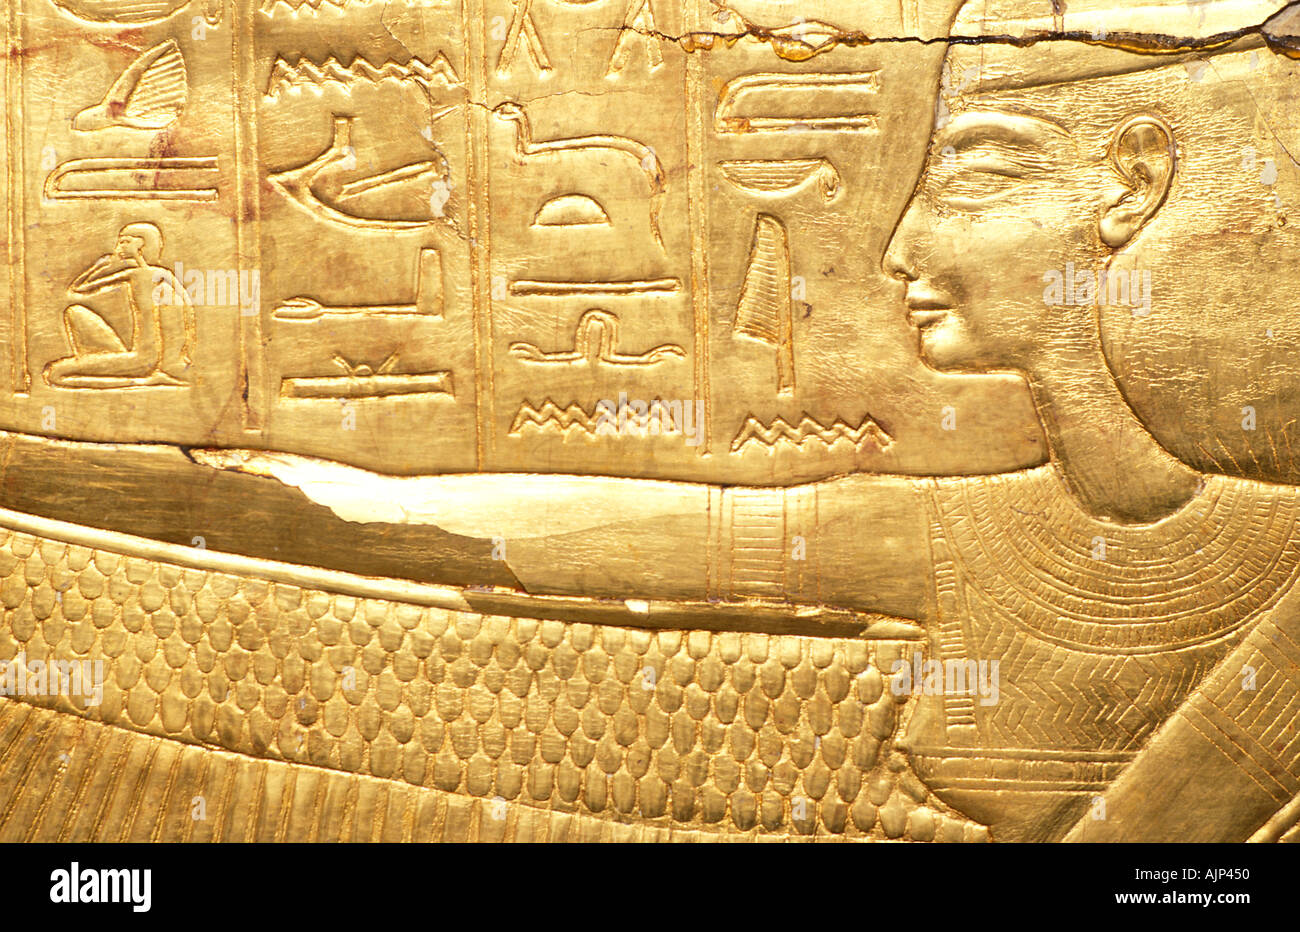 Detail of gilded sarcophagus of Tutankhamun ornately carved Discovered in 1922 by Howard Carter Egyptian Museum Cairo Egypt - Stock Image